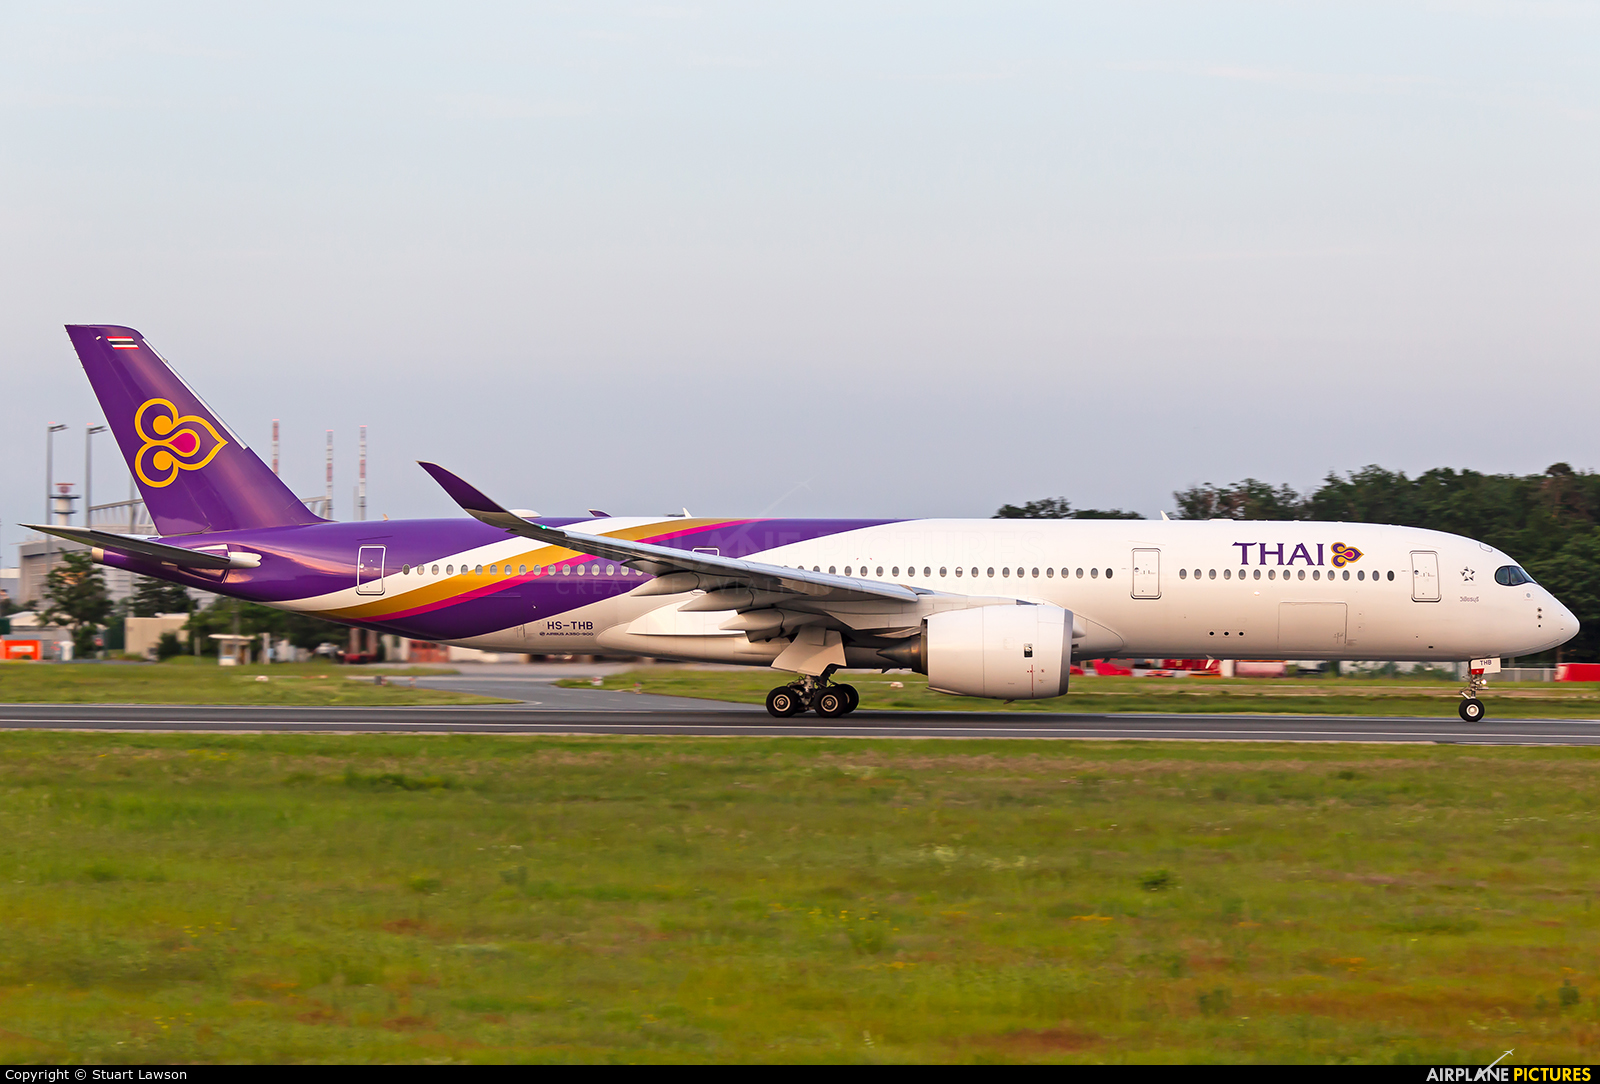 Thai Airways HS-THB aircraft at Frankfurt